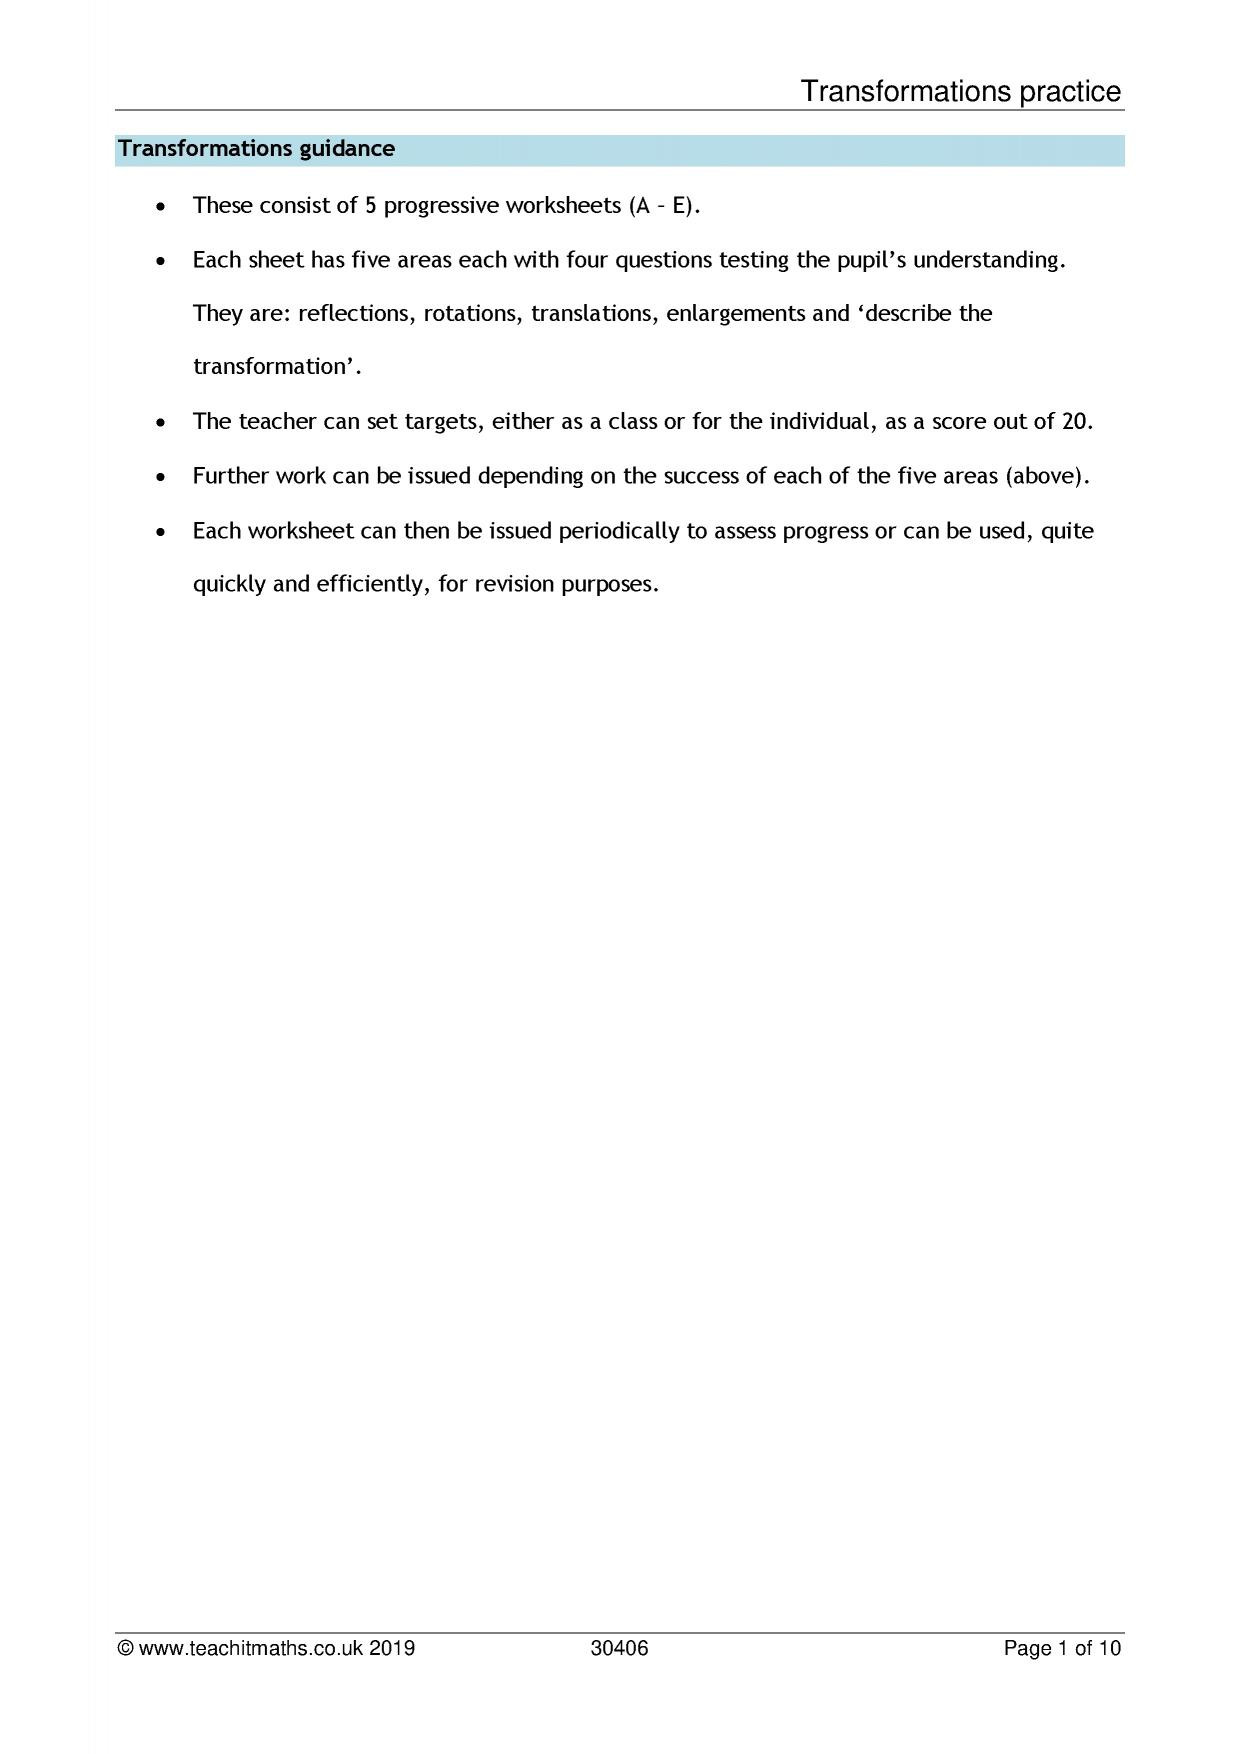 Translations Reflections and Rotations Worksheet